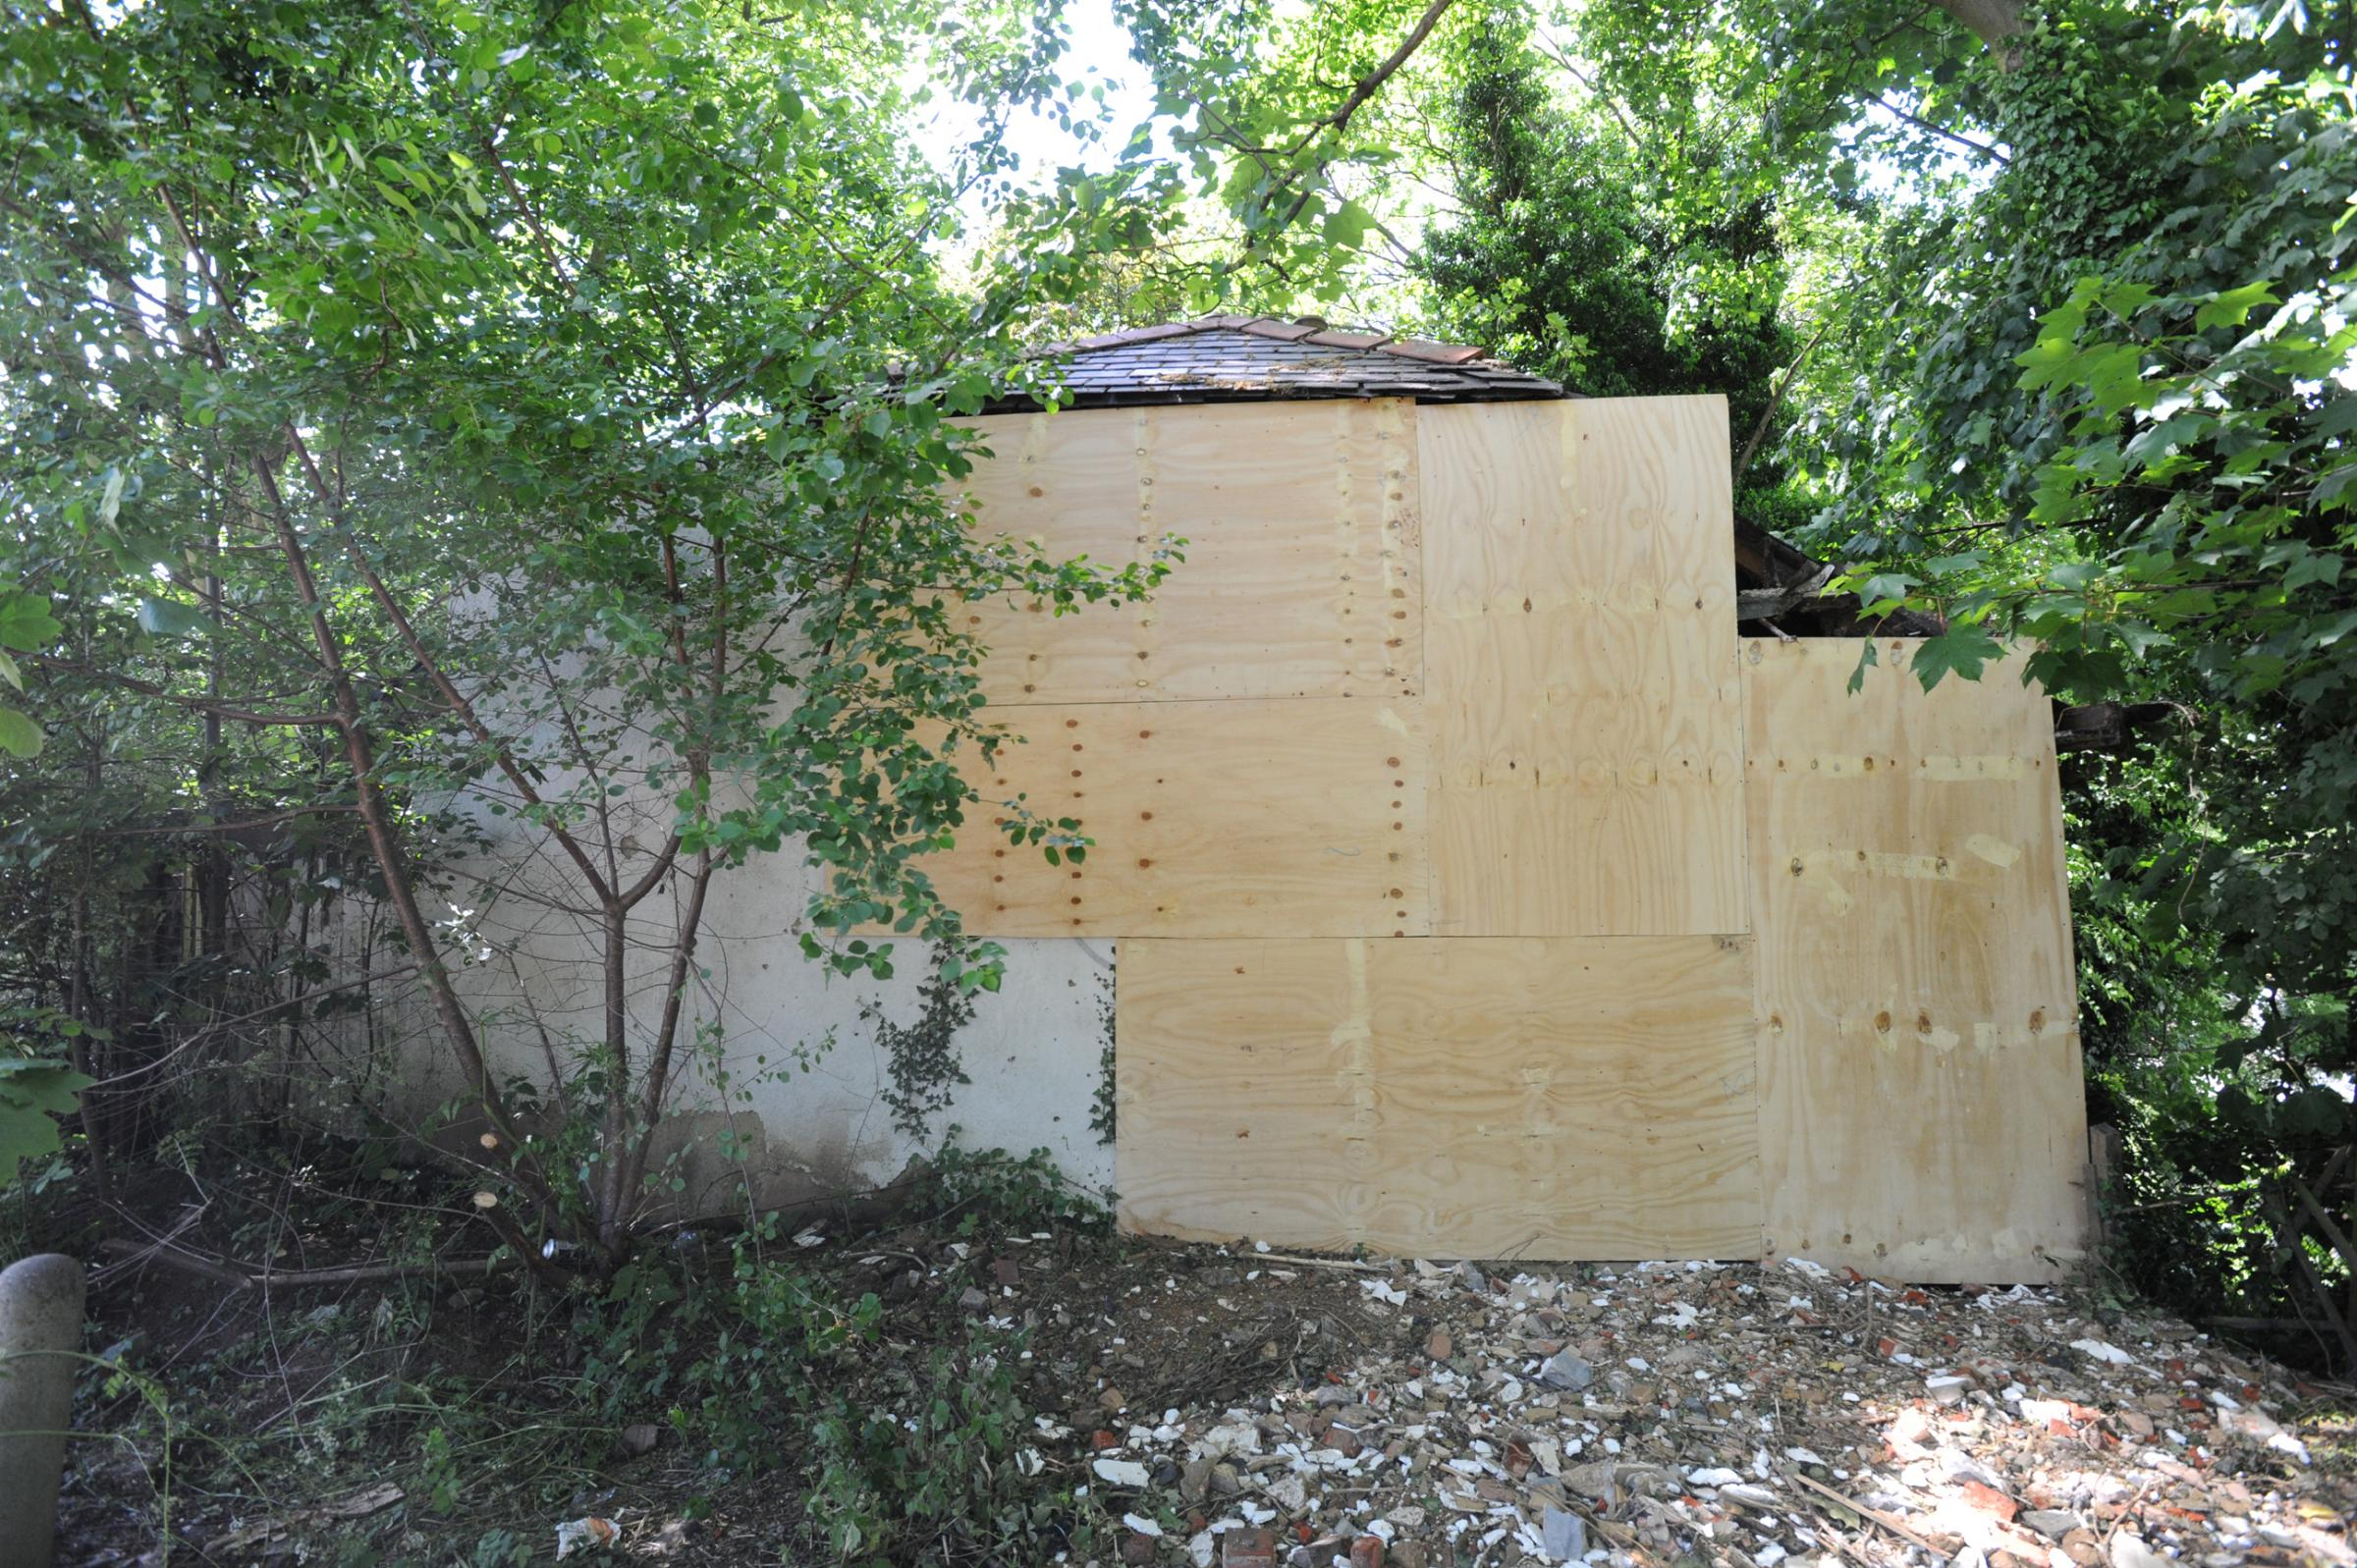 Boarded up – the bungalow that was hit by a speeding car